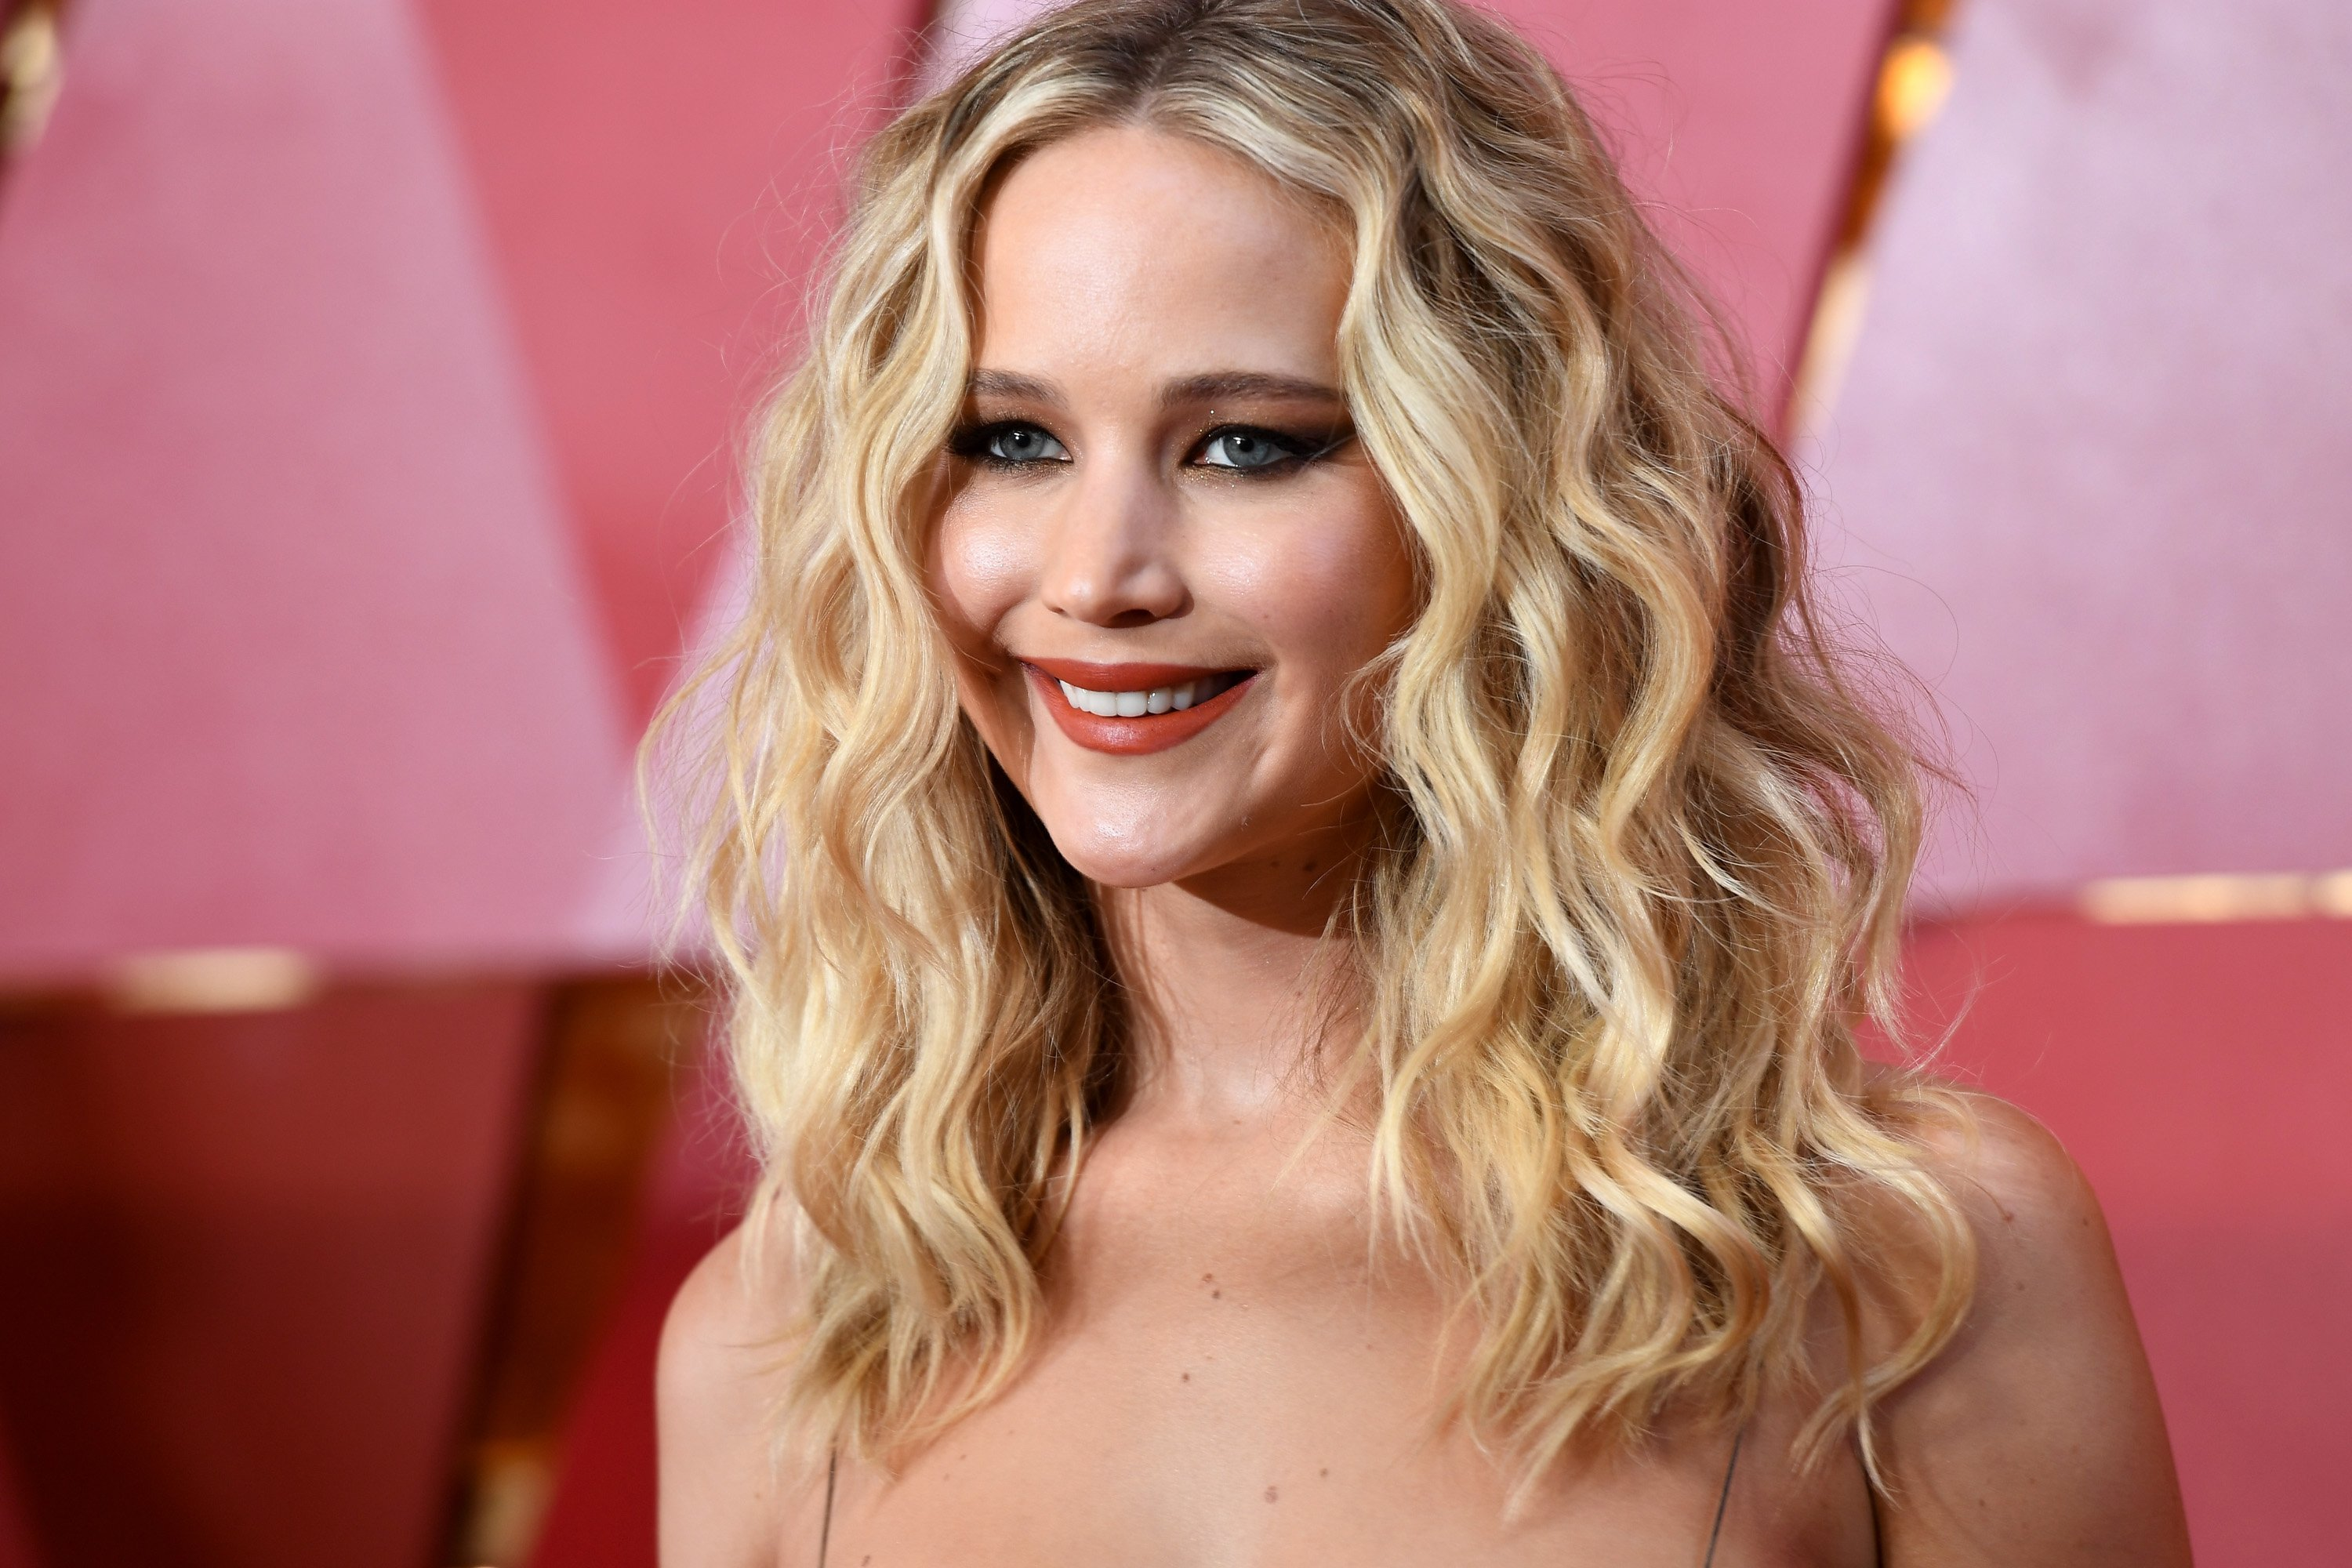 Jennifer Lawrence attends the 90th Annual Academy Awards in Hollywood, California on March 4, 2018 | Photo: Getty Images